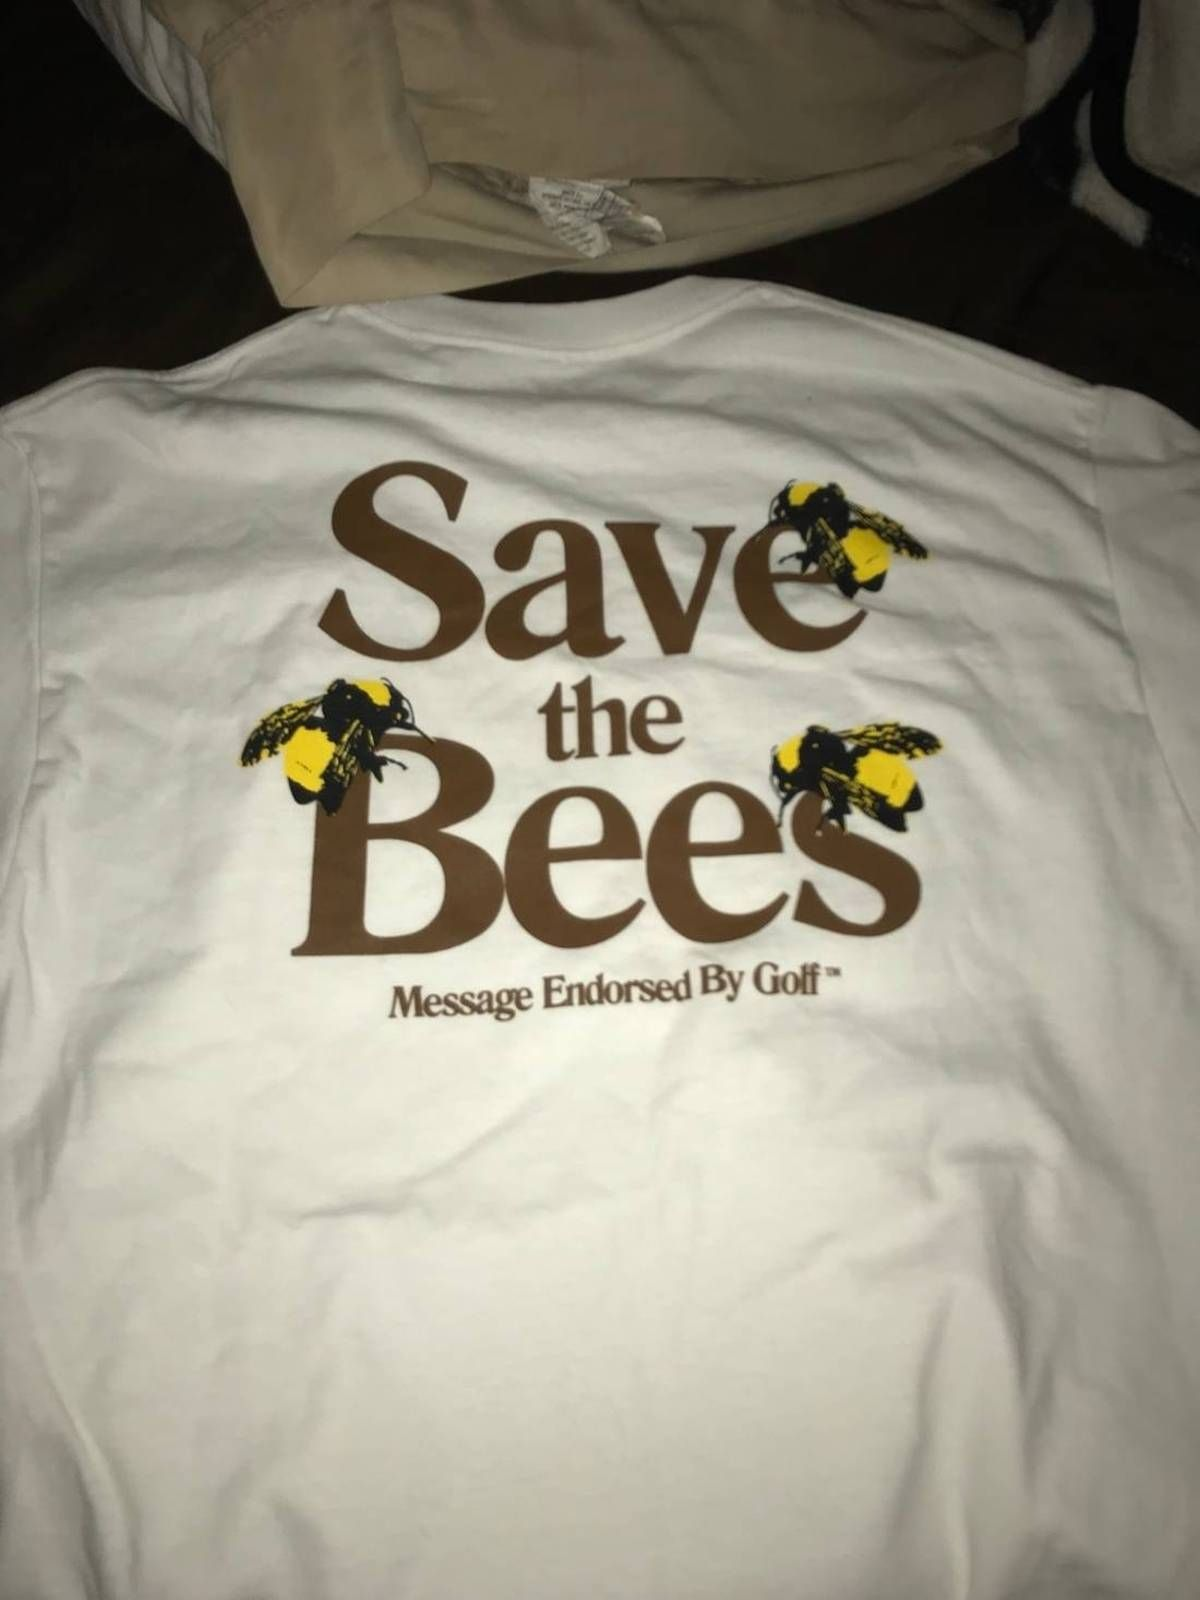 3421bdf8ee66 Golf Wang Save The Bees Size l - Short Sleeve T-Shirts for Sale - Grailed